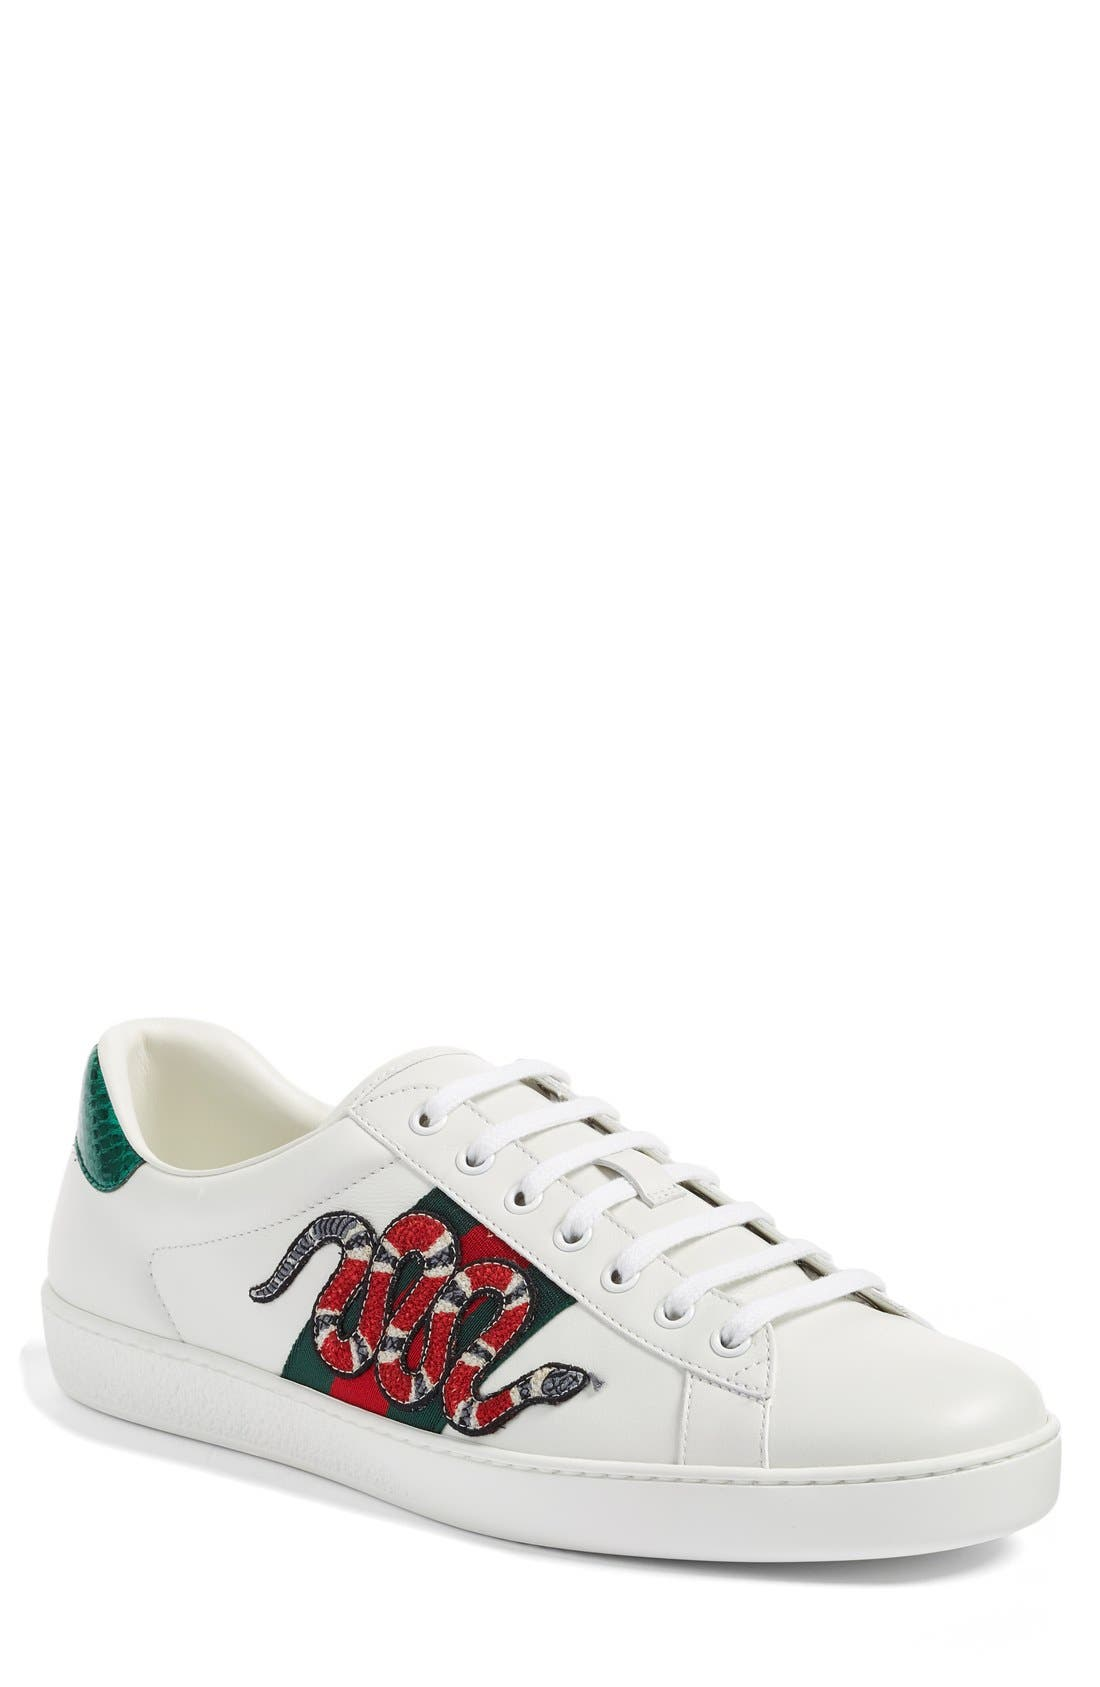 GUCCI, 'New Ace' Sneaker, Main thumbnail 1, color, BIANCO LEATHER